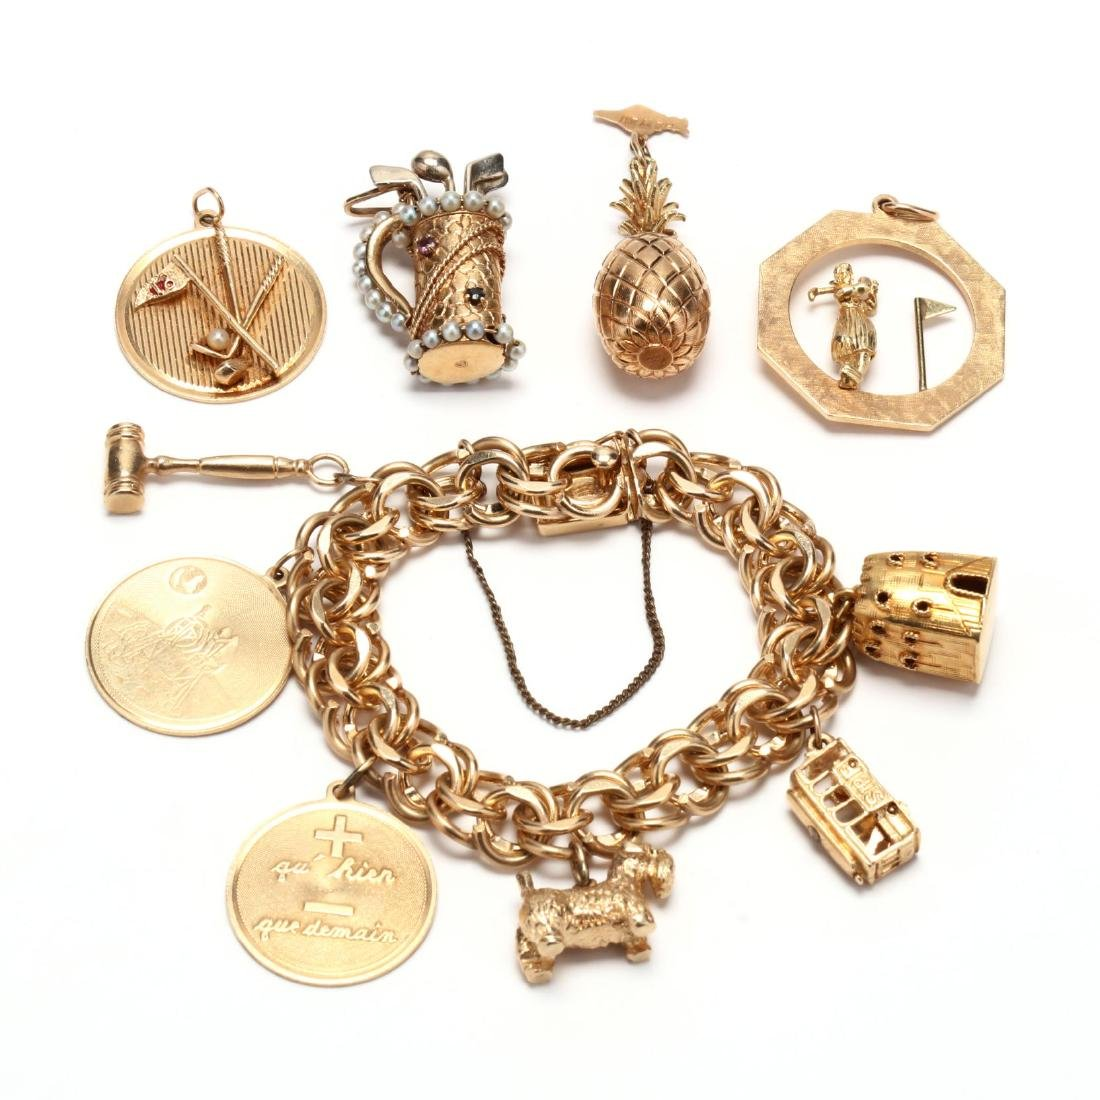 Gold Charm Bracelet and Charms